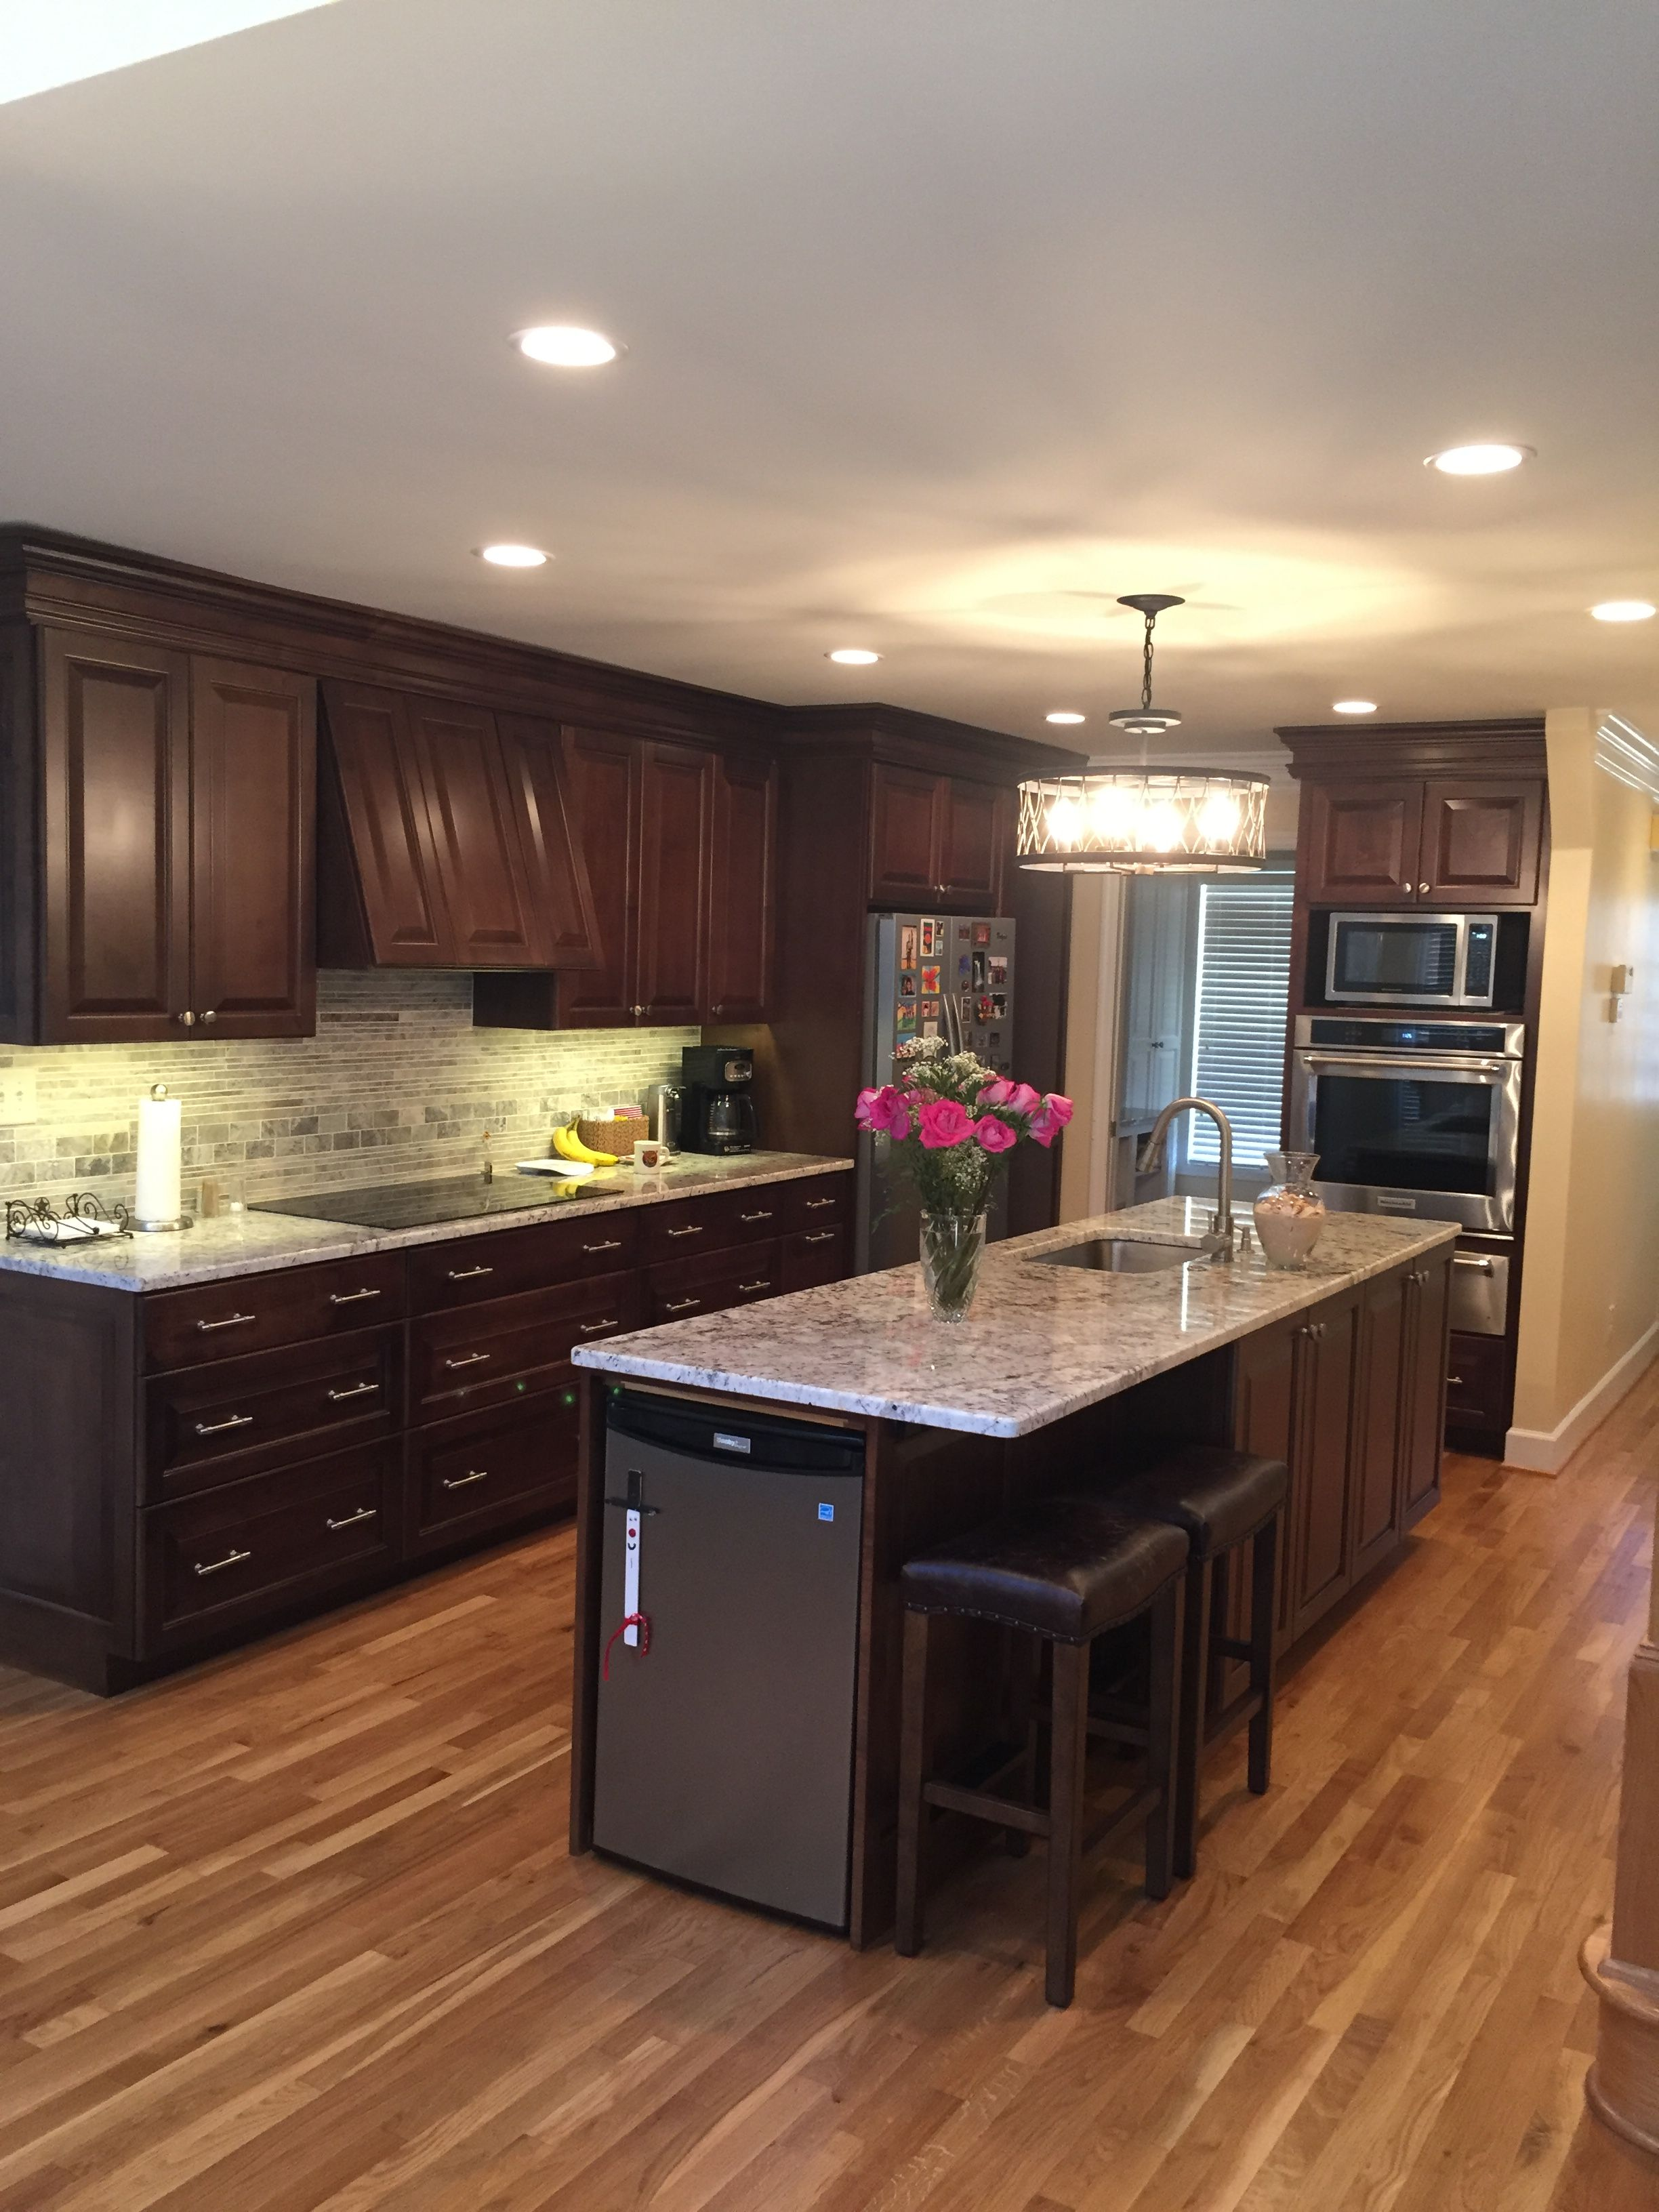 this is my awesome kitchen designed by meriwether design on awesome modern kitchen design ideas id=49133